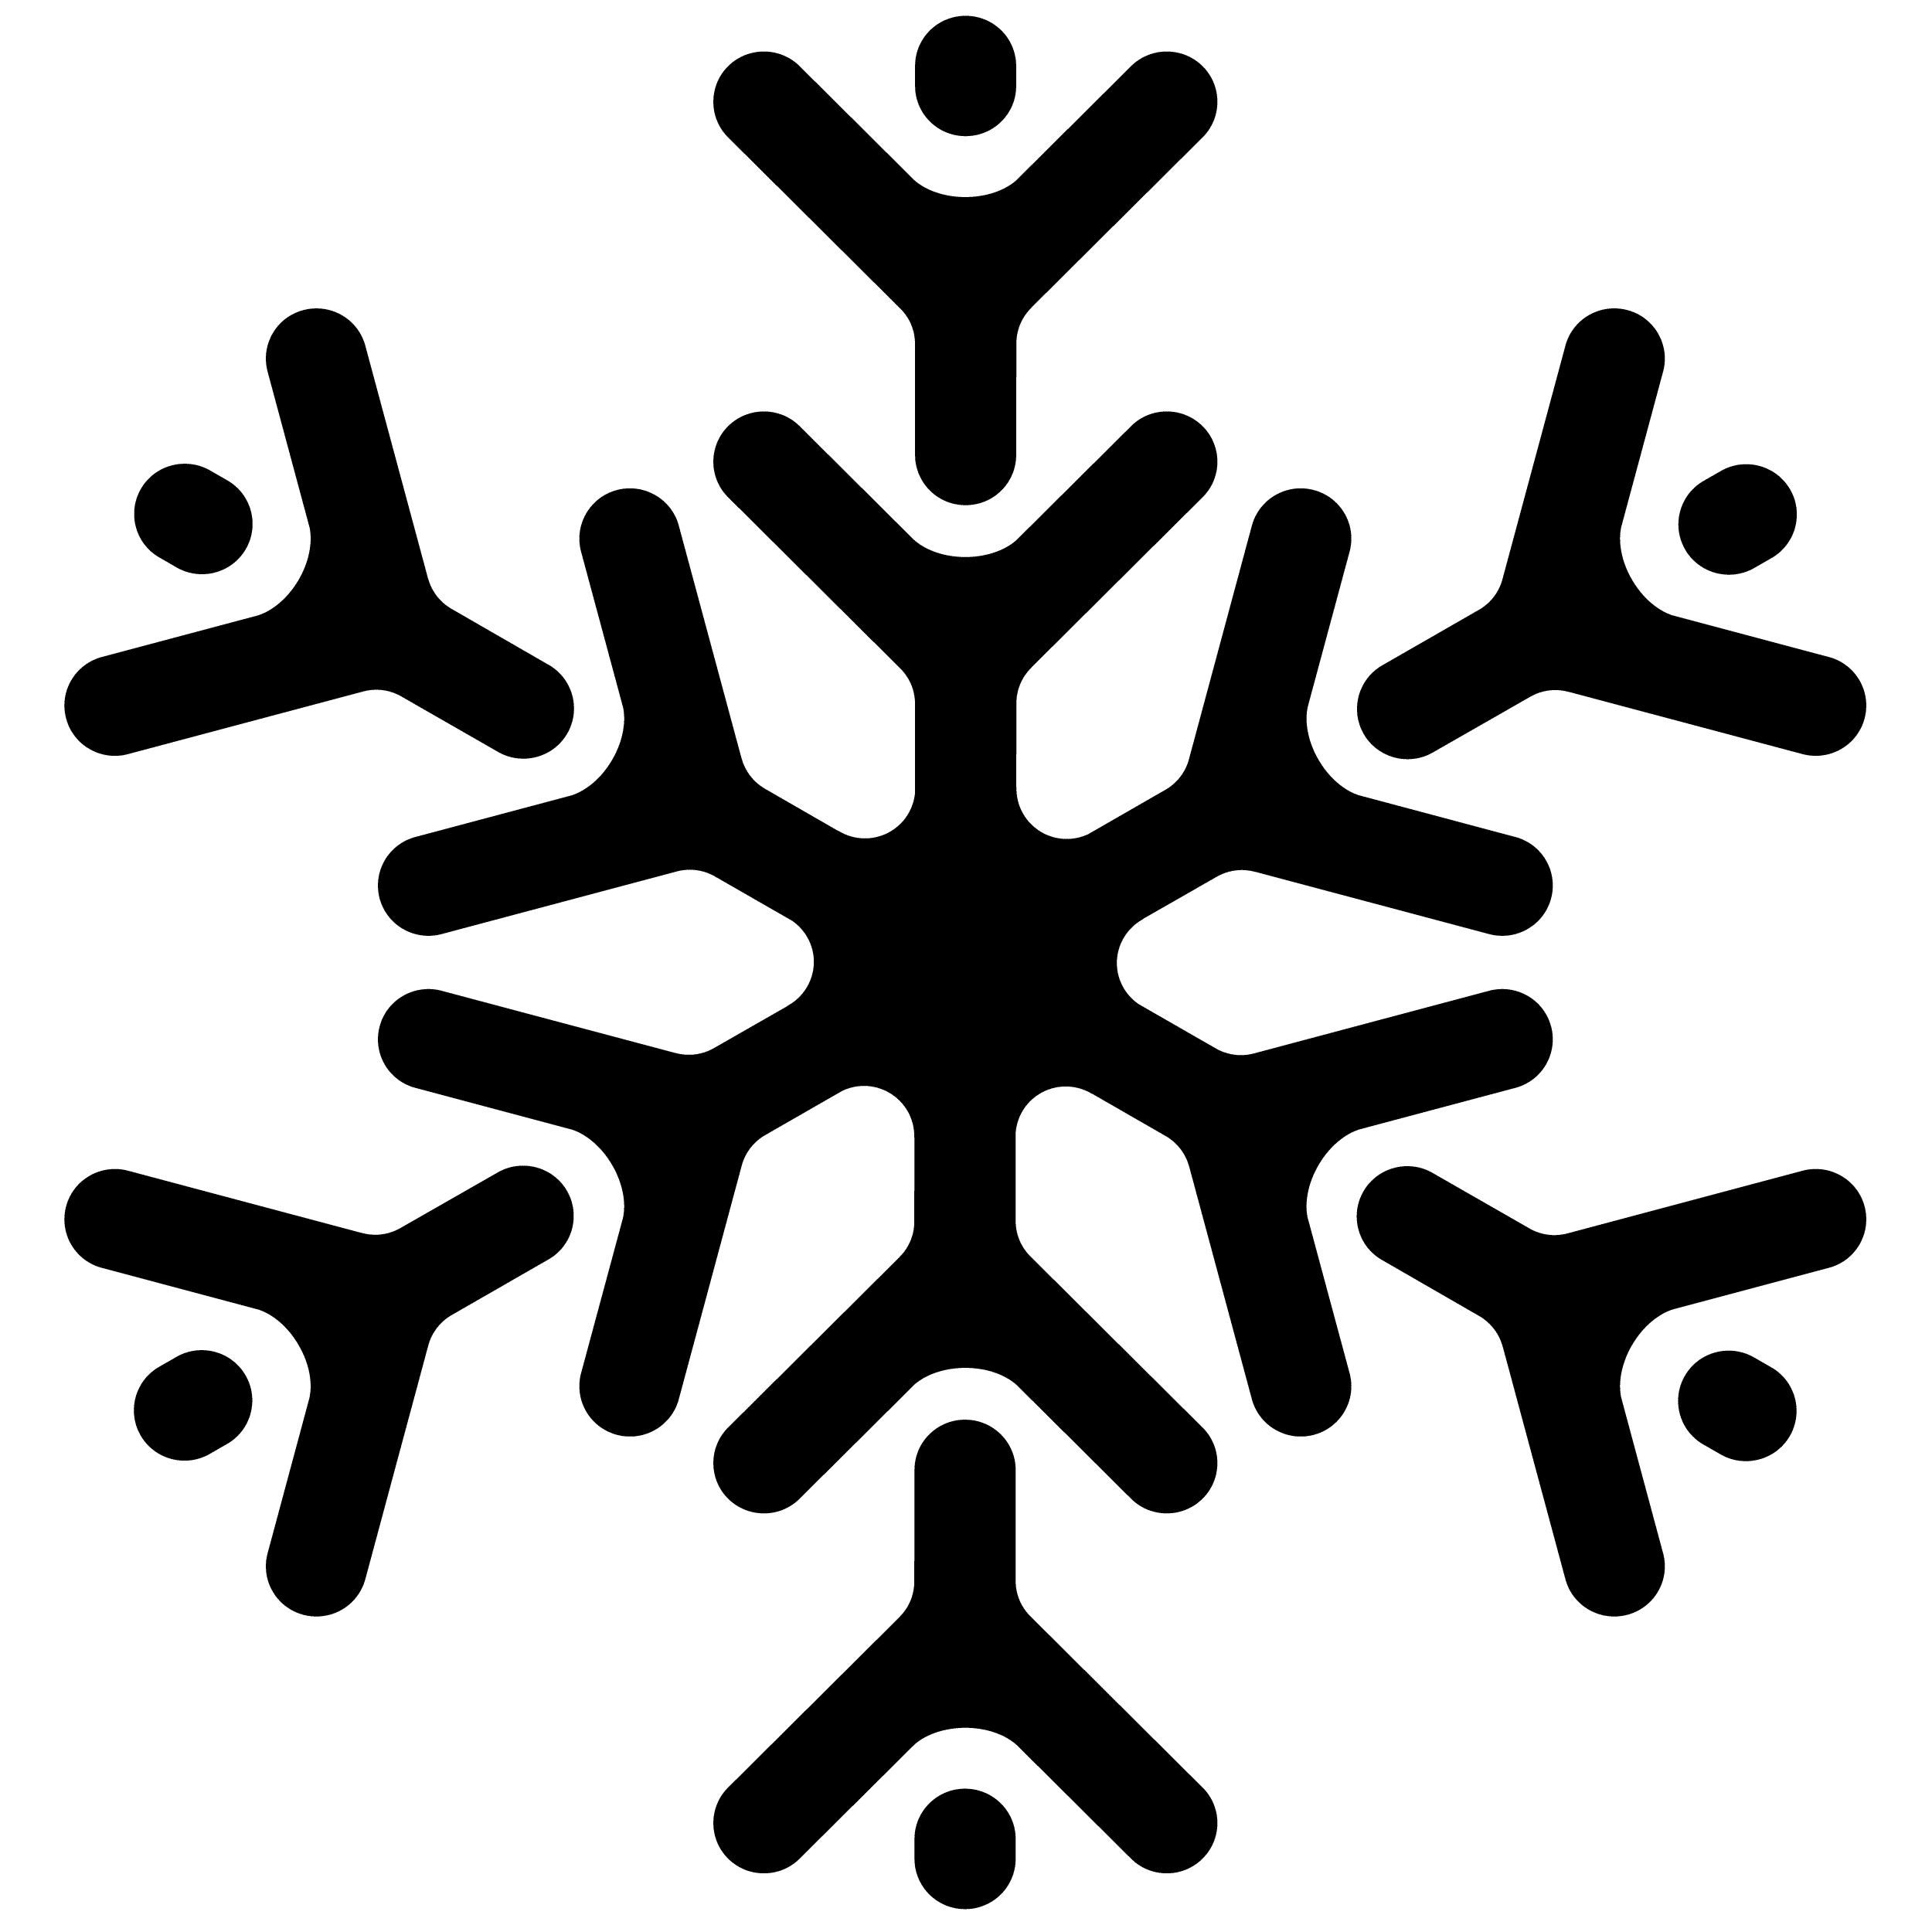 Free Snowflake Vector Png, Download Free Clip Art, Free Clip.